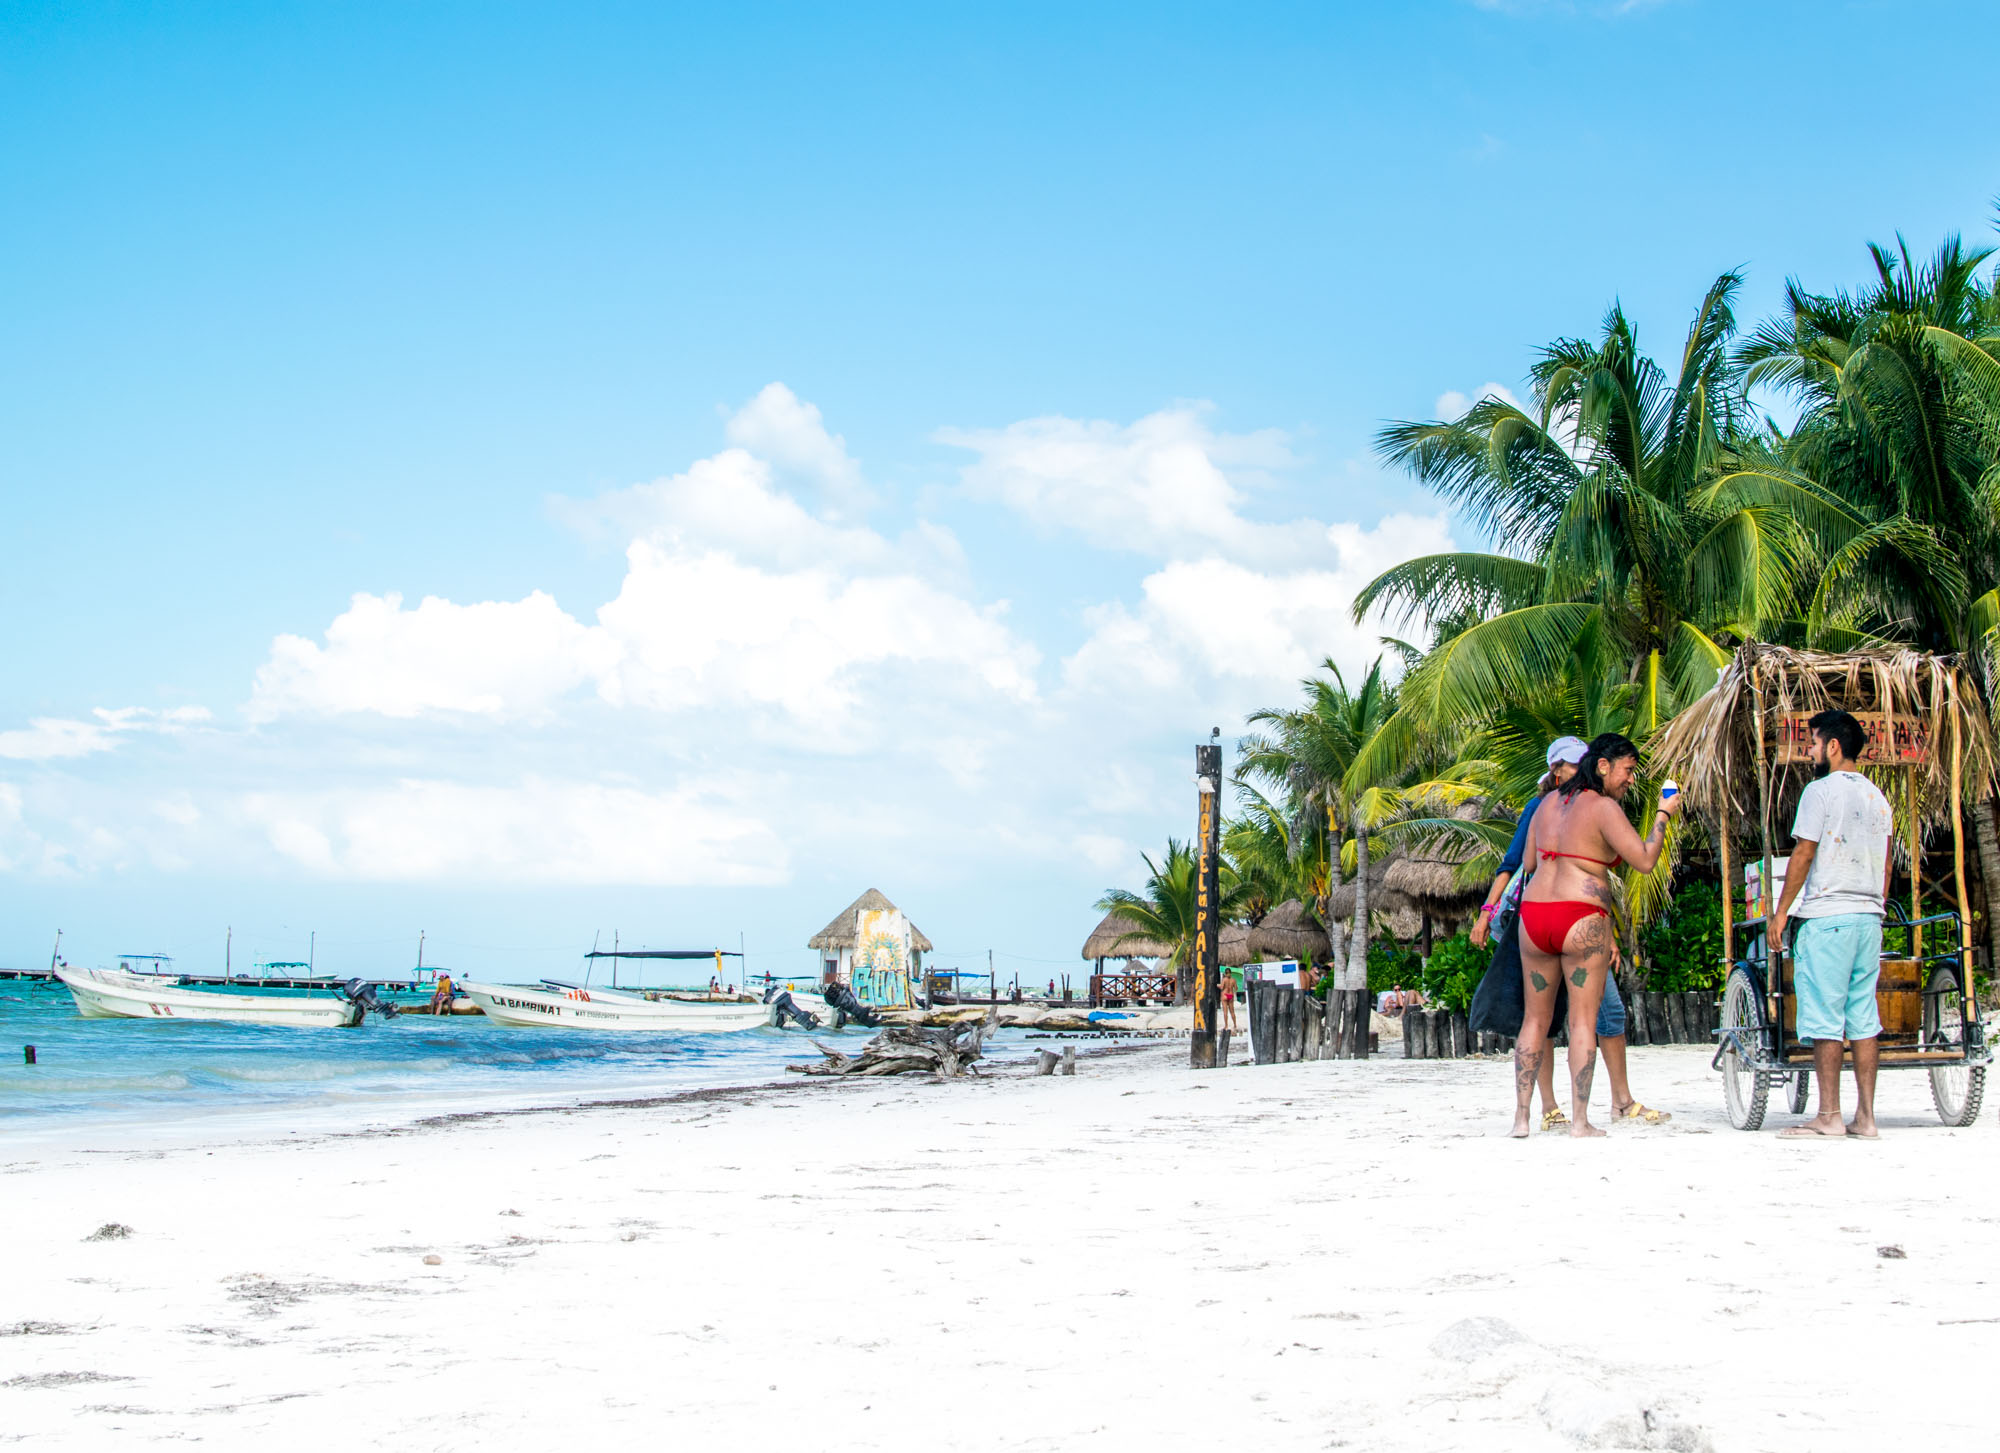 Couple buying shaved coconut from a cart on the beach in Isla Holbox,Mexico.